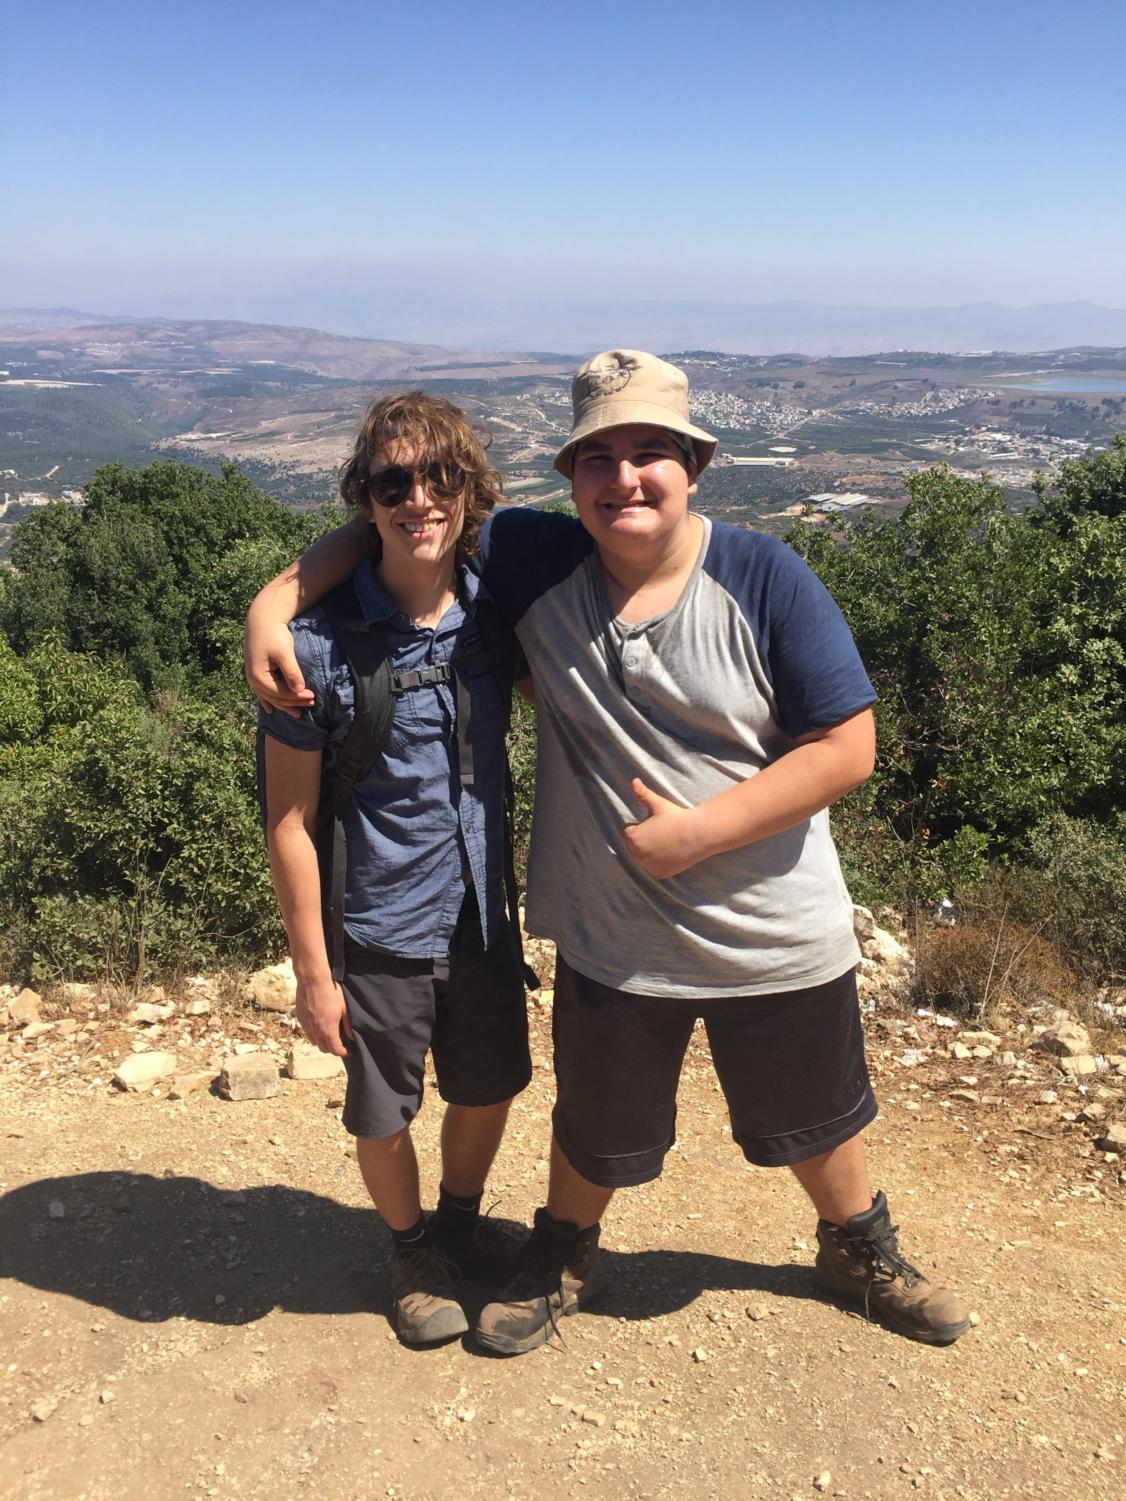 My friend and I standing on the summit of a hill, which overlooks the Lebanese border, during our Yam LeYam hike (a four day hike from the Mediterrean Sea to the Sea of Galilee).